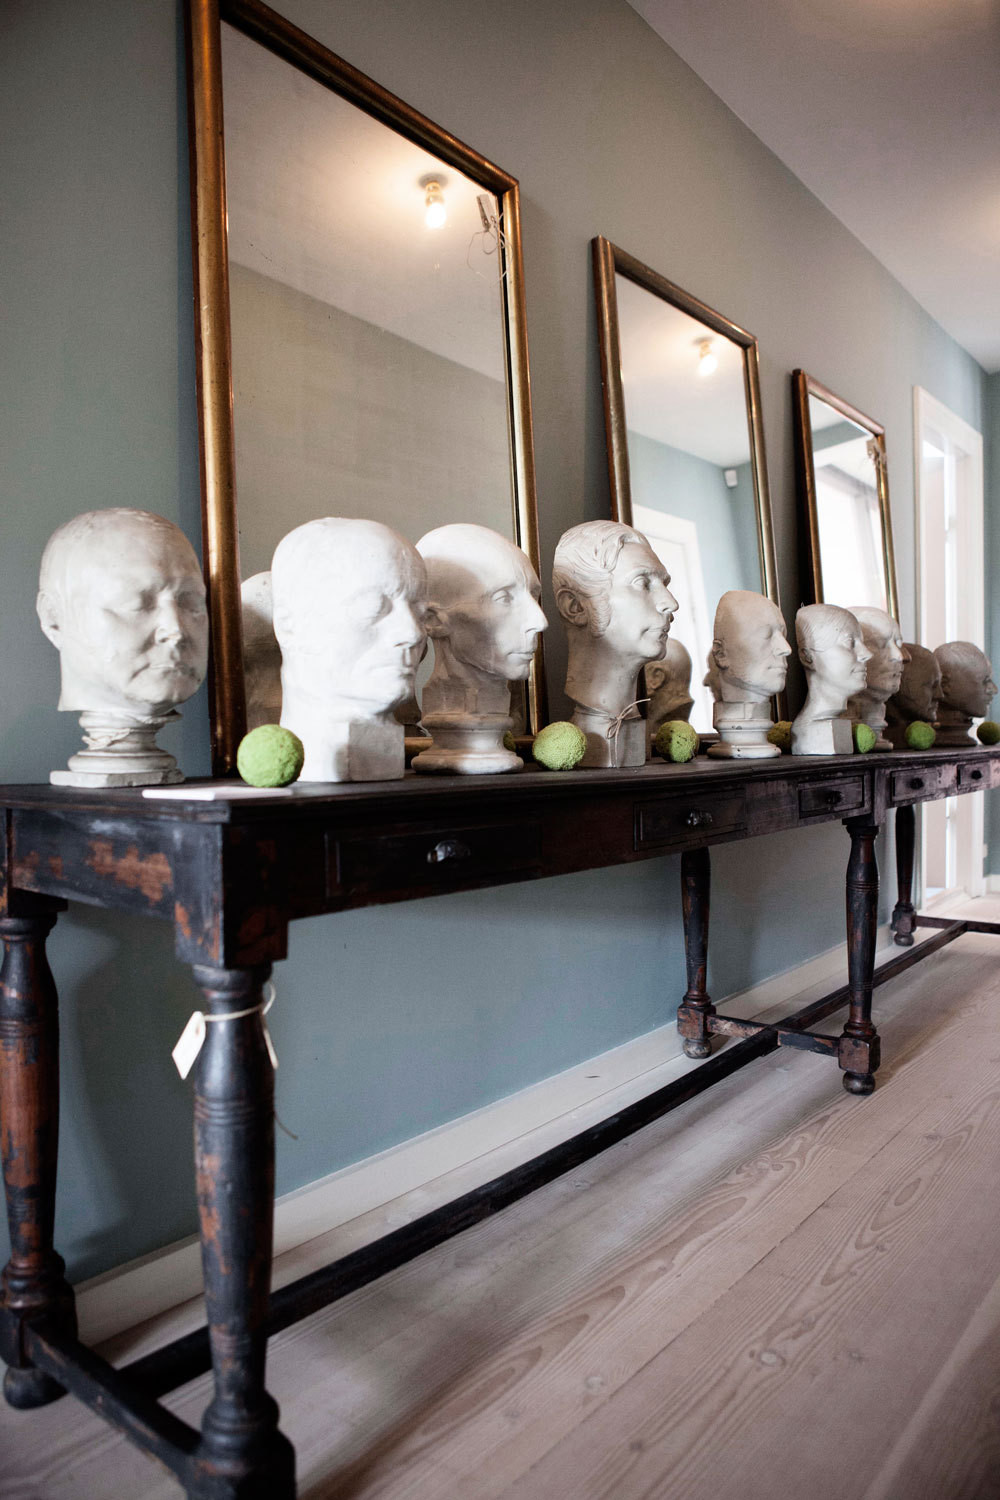 Marble busts at 1stdibs dealer the Apartment, in Copenhagen.